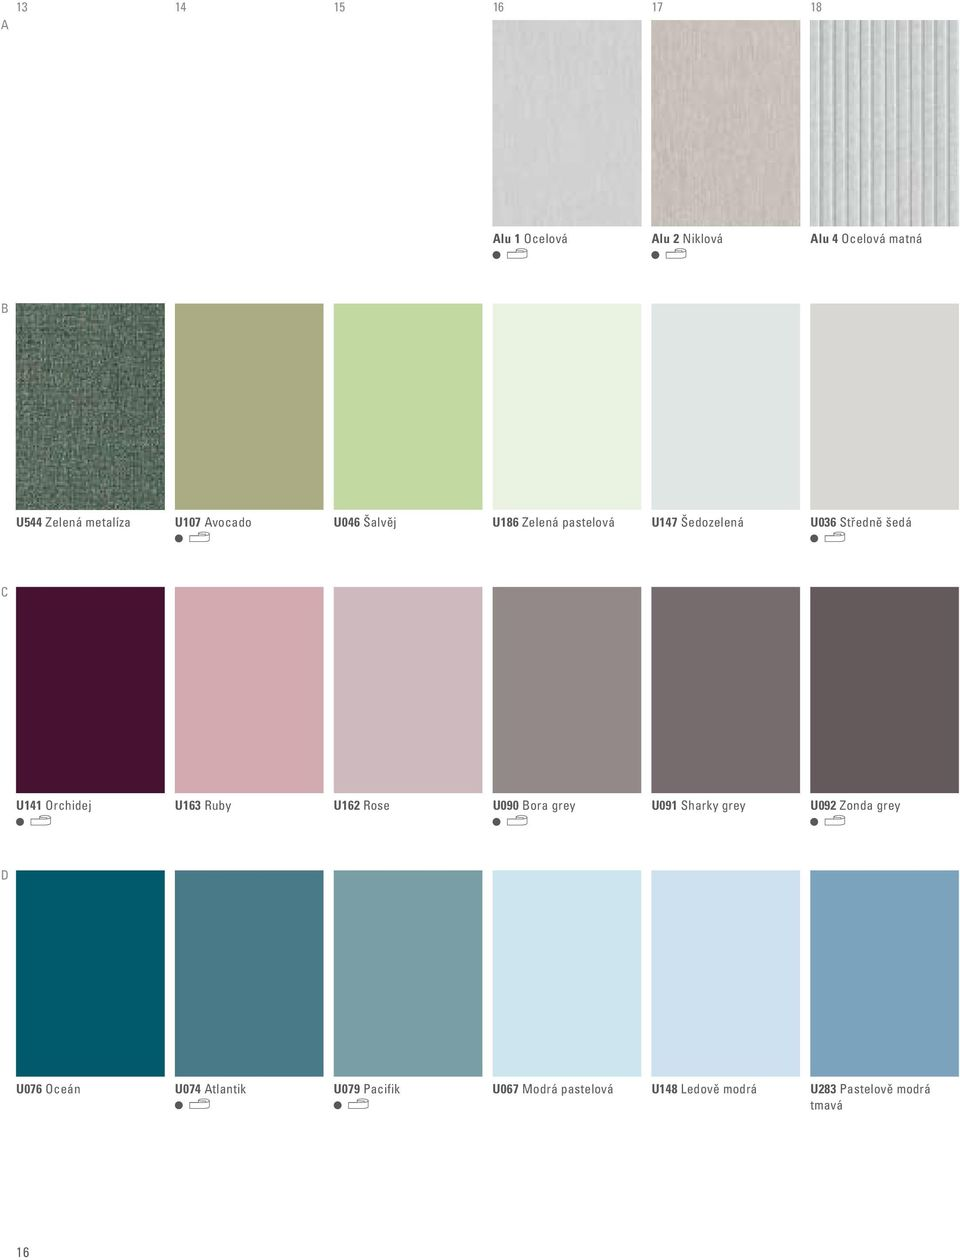 Orchidej U163 Ruby U162 Rose U090 Bora grey U091 Sharky grey U092 Zonda grey D U076 Oceán